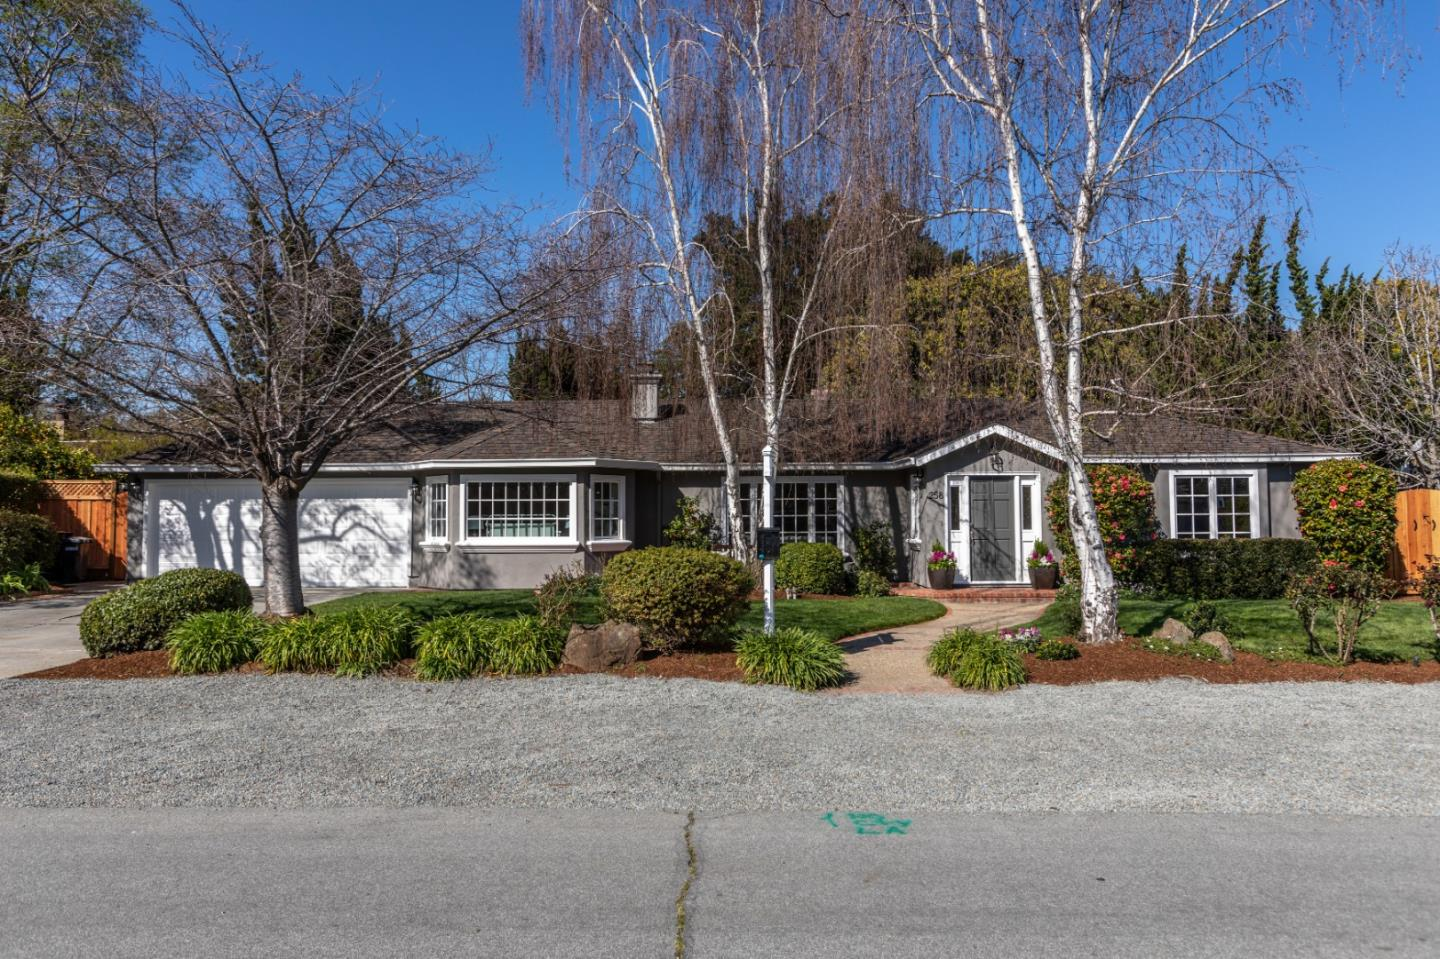 Don't miss this true Gem; located in desirable North Los Altos. This beautiful single level home has 4 bedrooms and 3 full baths in the main house and a full bath in the guest/pool house. Situated on a quiet street and minutes from downtown Los Altos, this family home is conveniently located near top rated Almond Elementary and Los Altos High Schools. Entering the marble foyer, you'll love the flexible floor plan, large open living spaces, the bright living room, formal dining room, family room/kitchen that is perfect for entertaining. Two sets of French doors lead to the park-like backyard on a private over-sized lot surrounded by mature trees. The home is freshly painted and accentuated with refinished hardwood floors and new carpets in the bedrooms. Children and guests will enjoy the charming pool/guest house, with French doors, full bath and bedroom; ideal for a playroom or overnight guests.